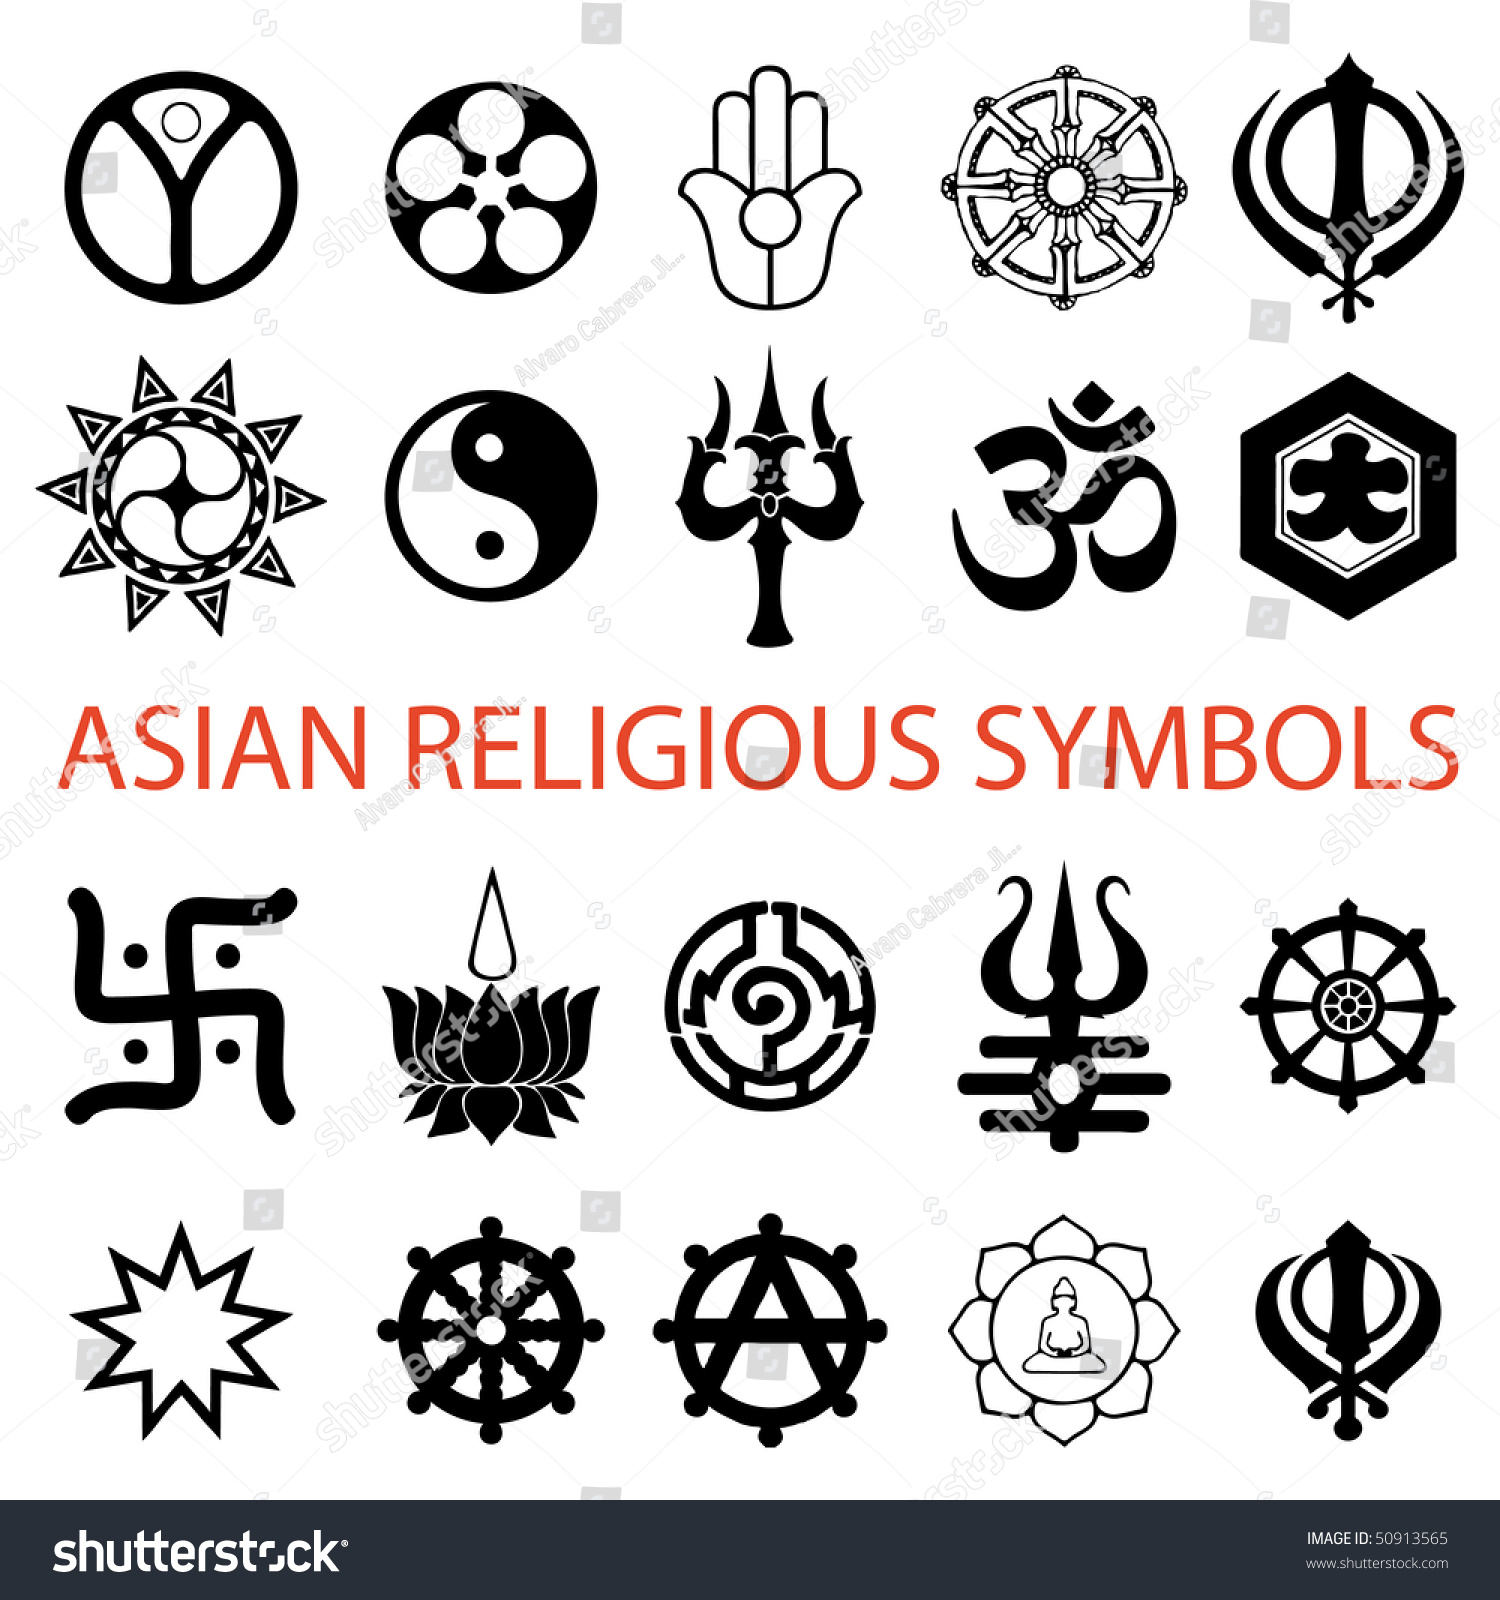 Vector Various Religious Symbols Asian Stock Photo